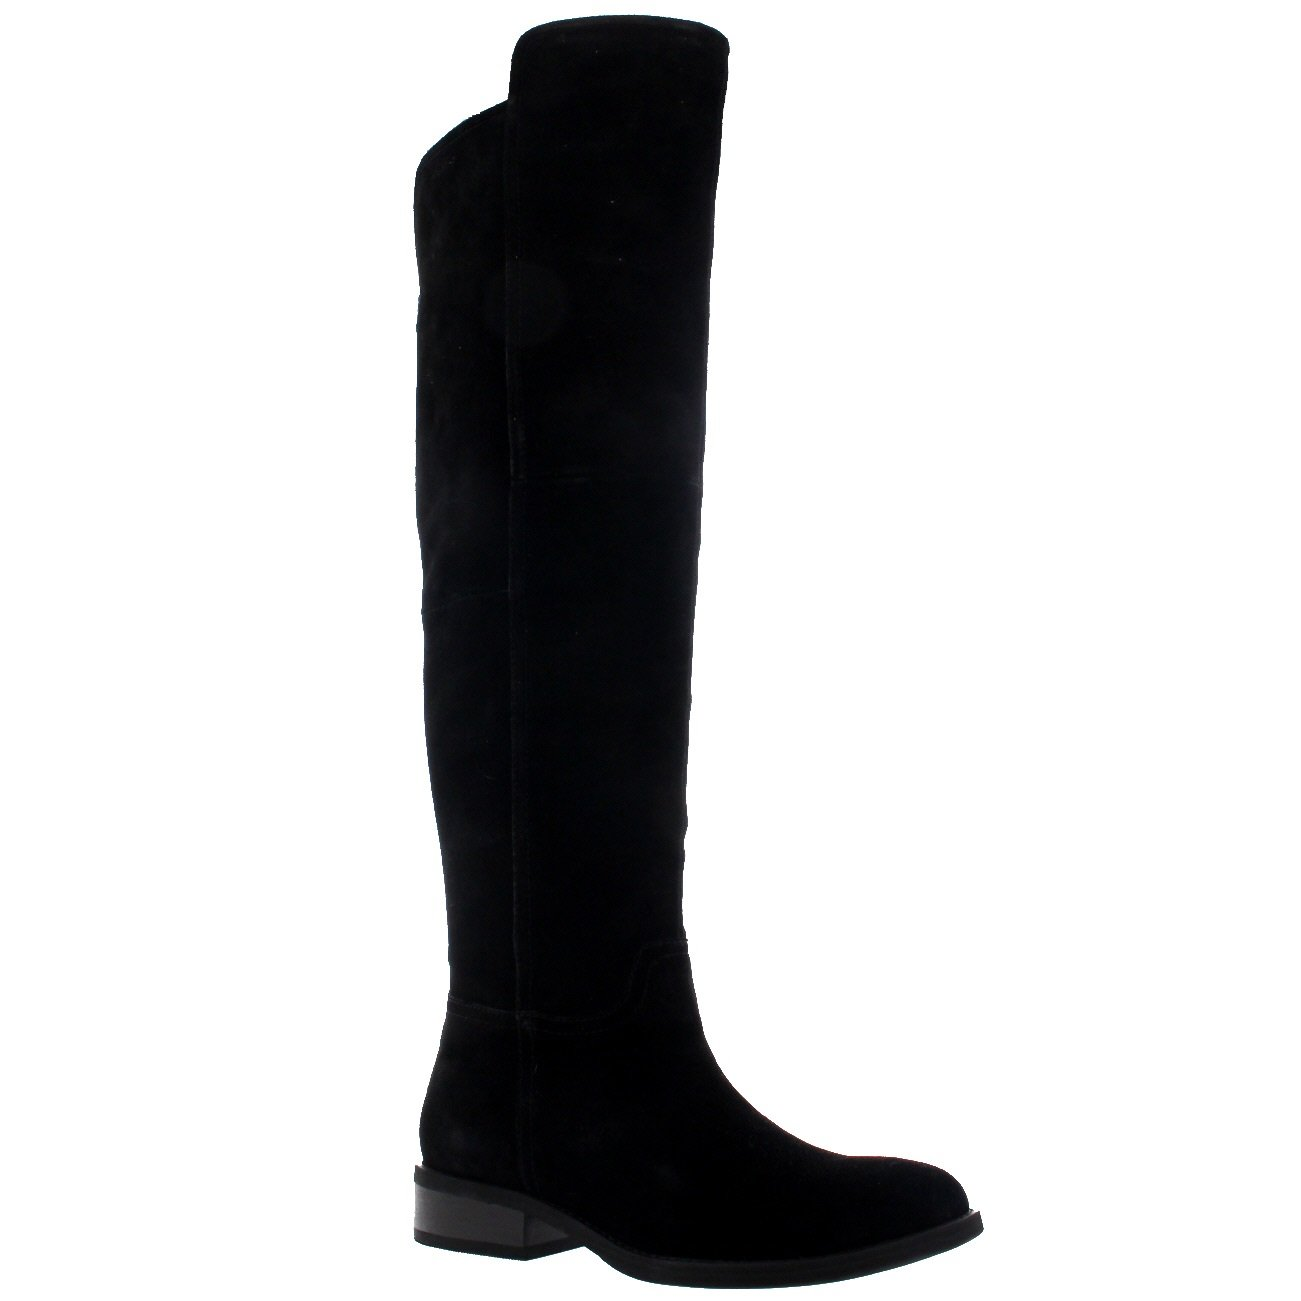 Womens Vagabond Cary Low Heel Black Winter Suede Over The Knee Boots - Black - 7